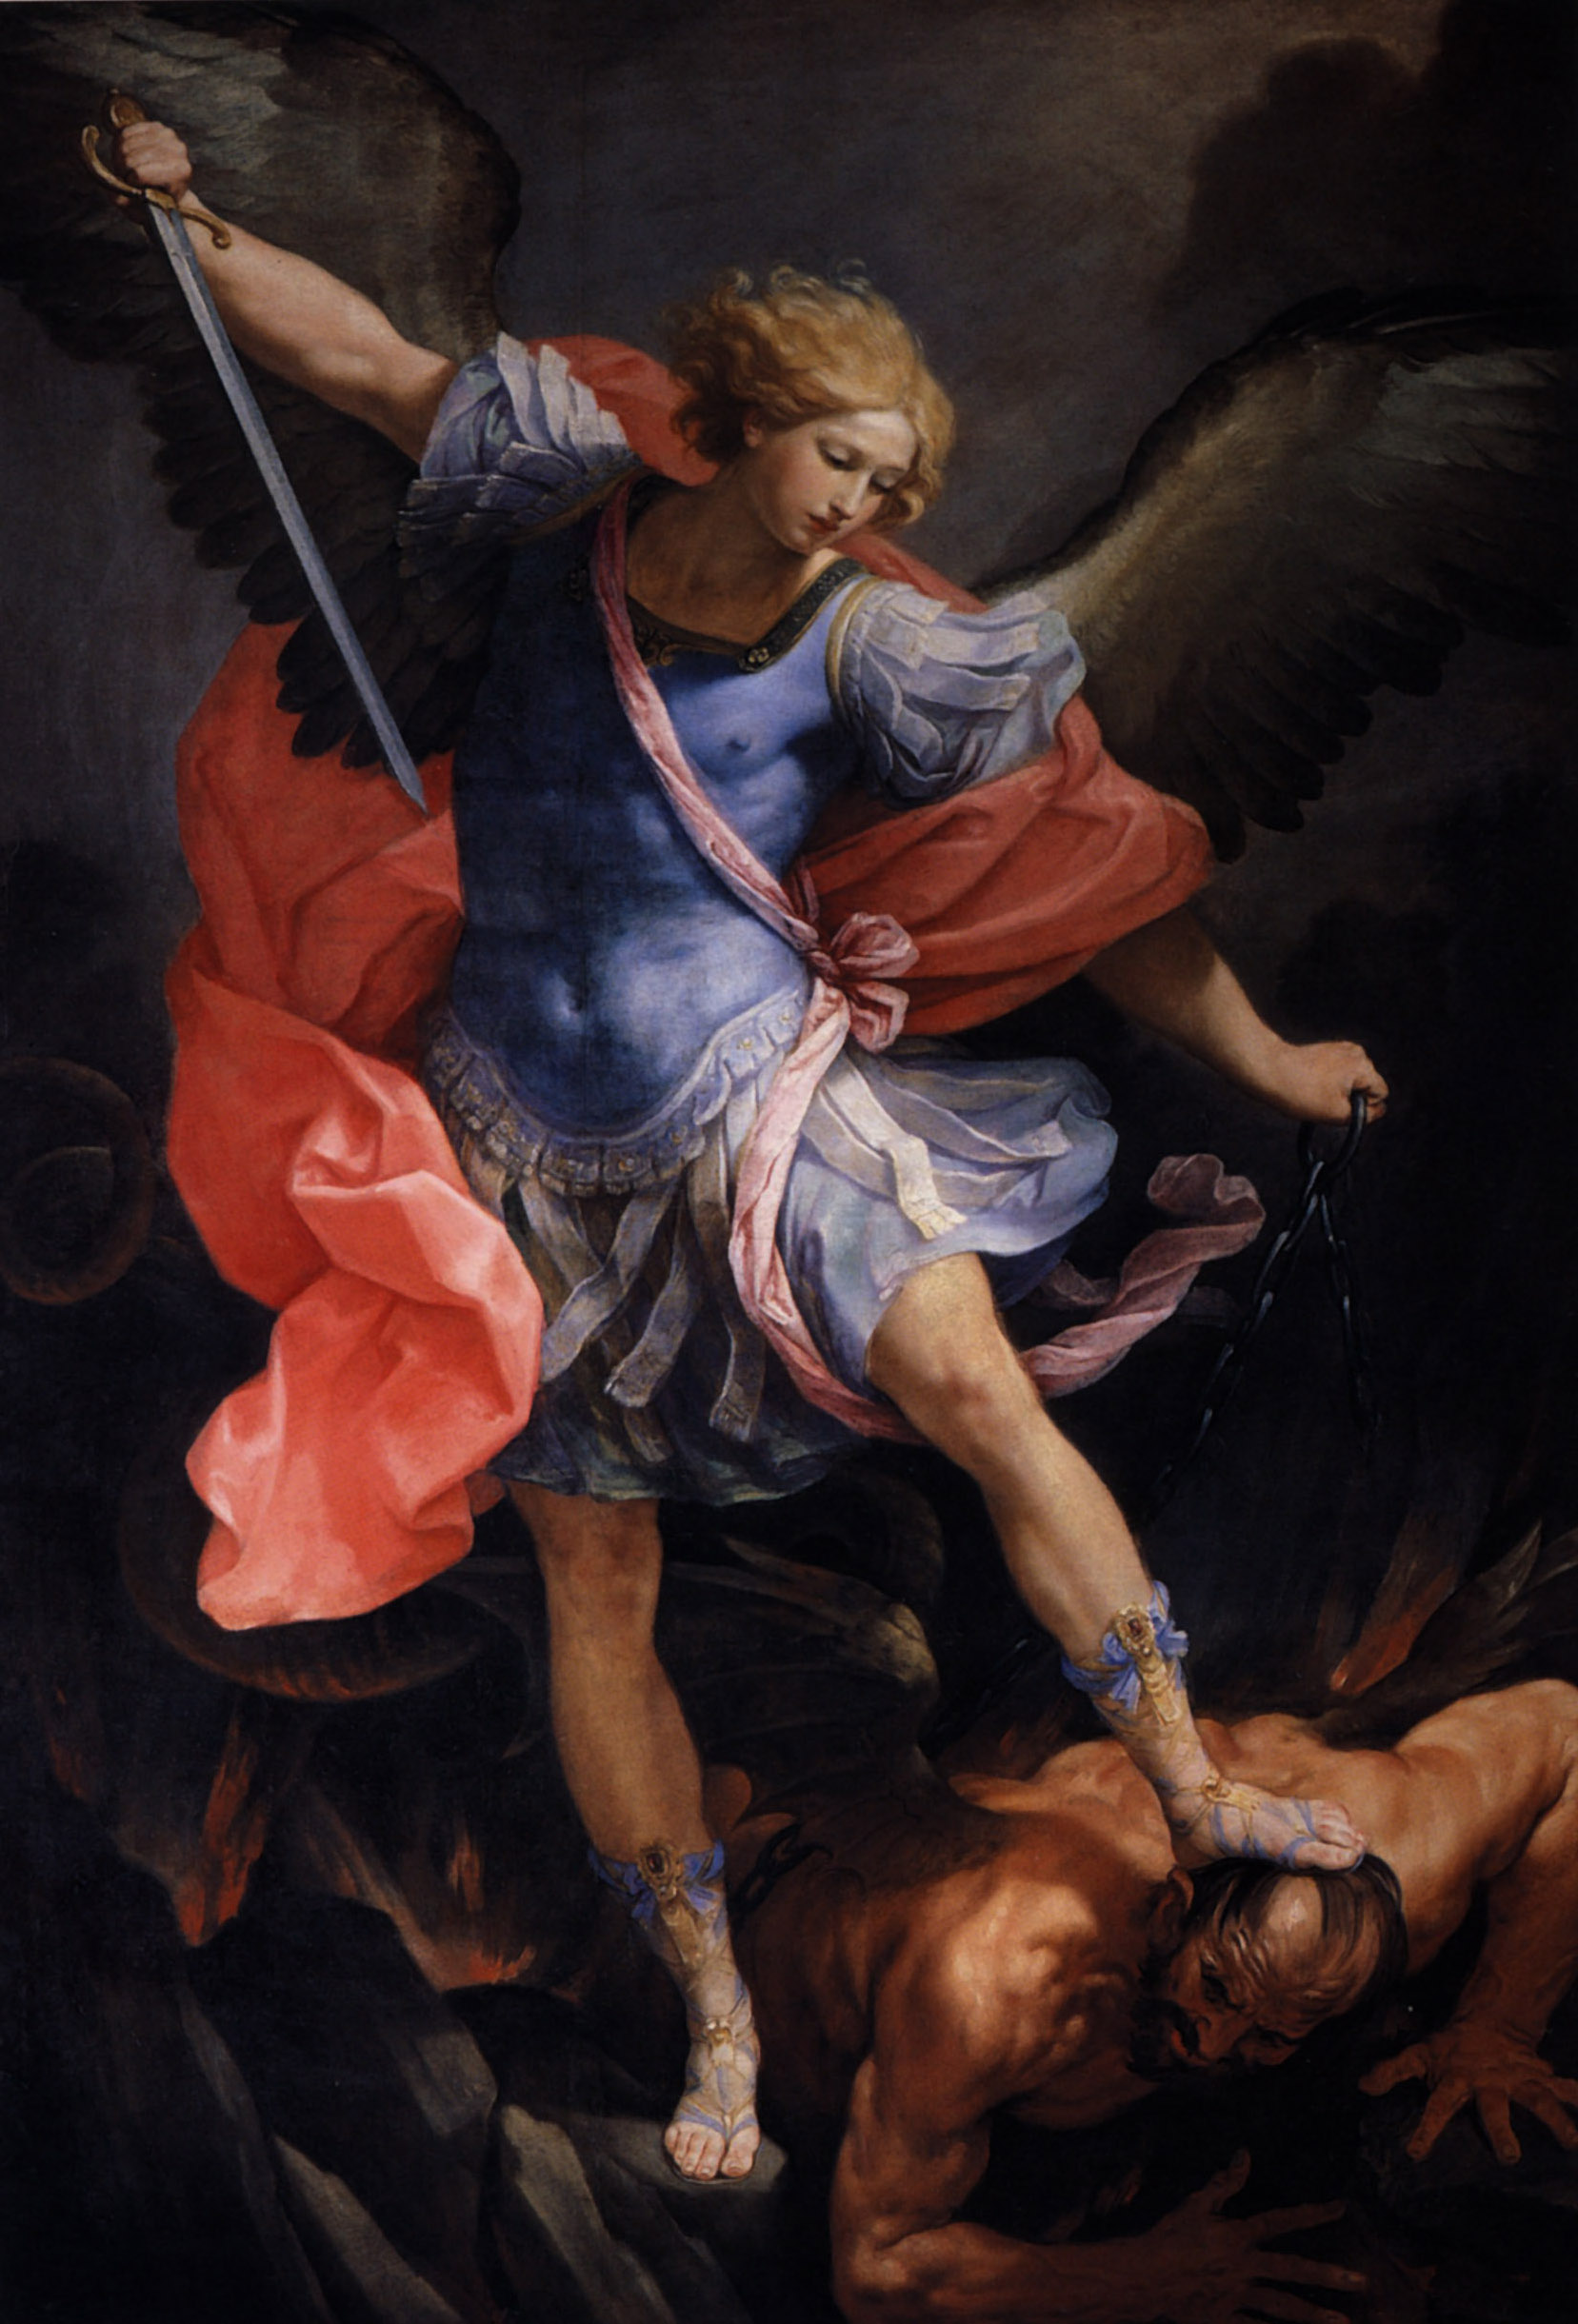 the-archangel-michael-defeating-satan-16